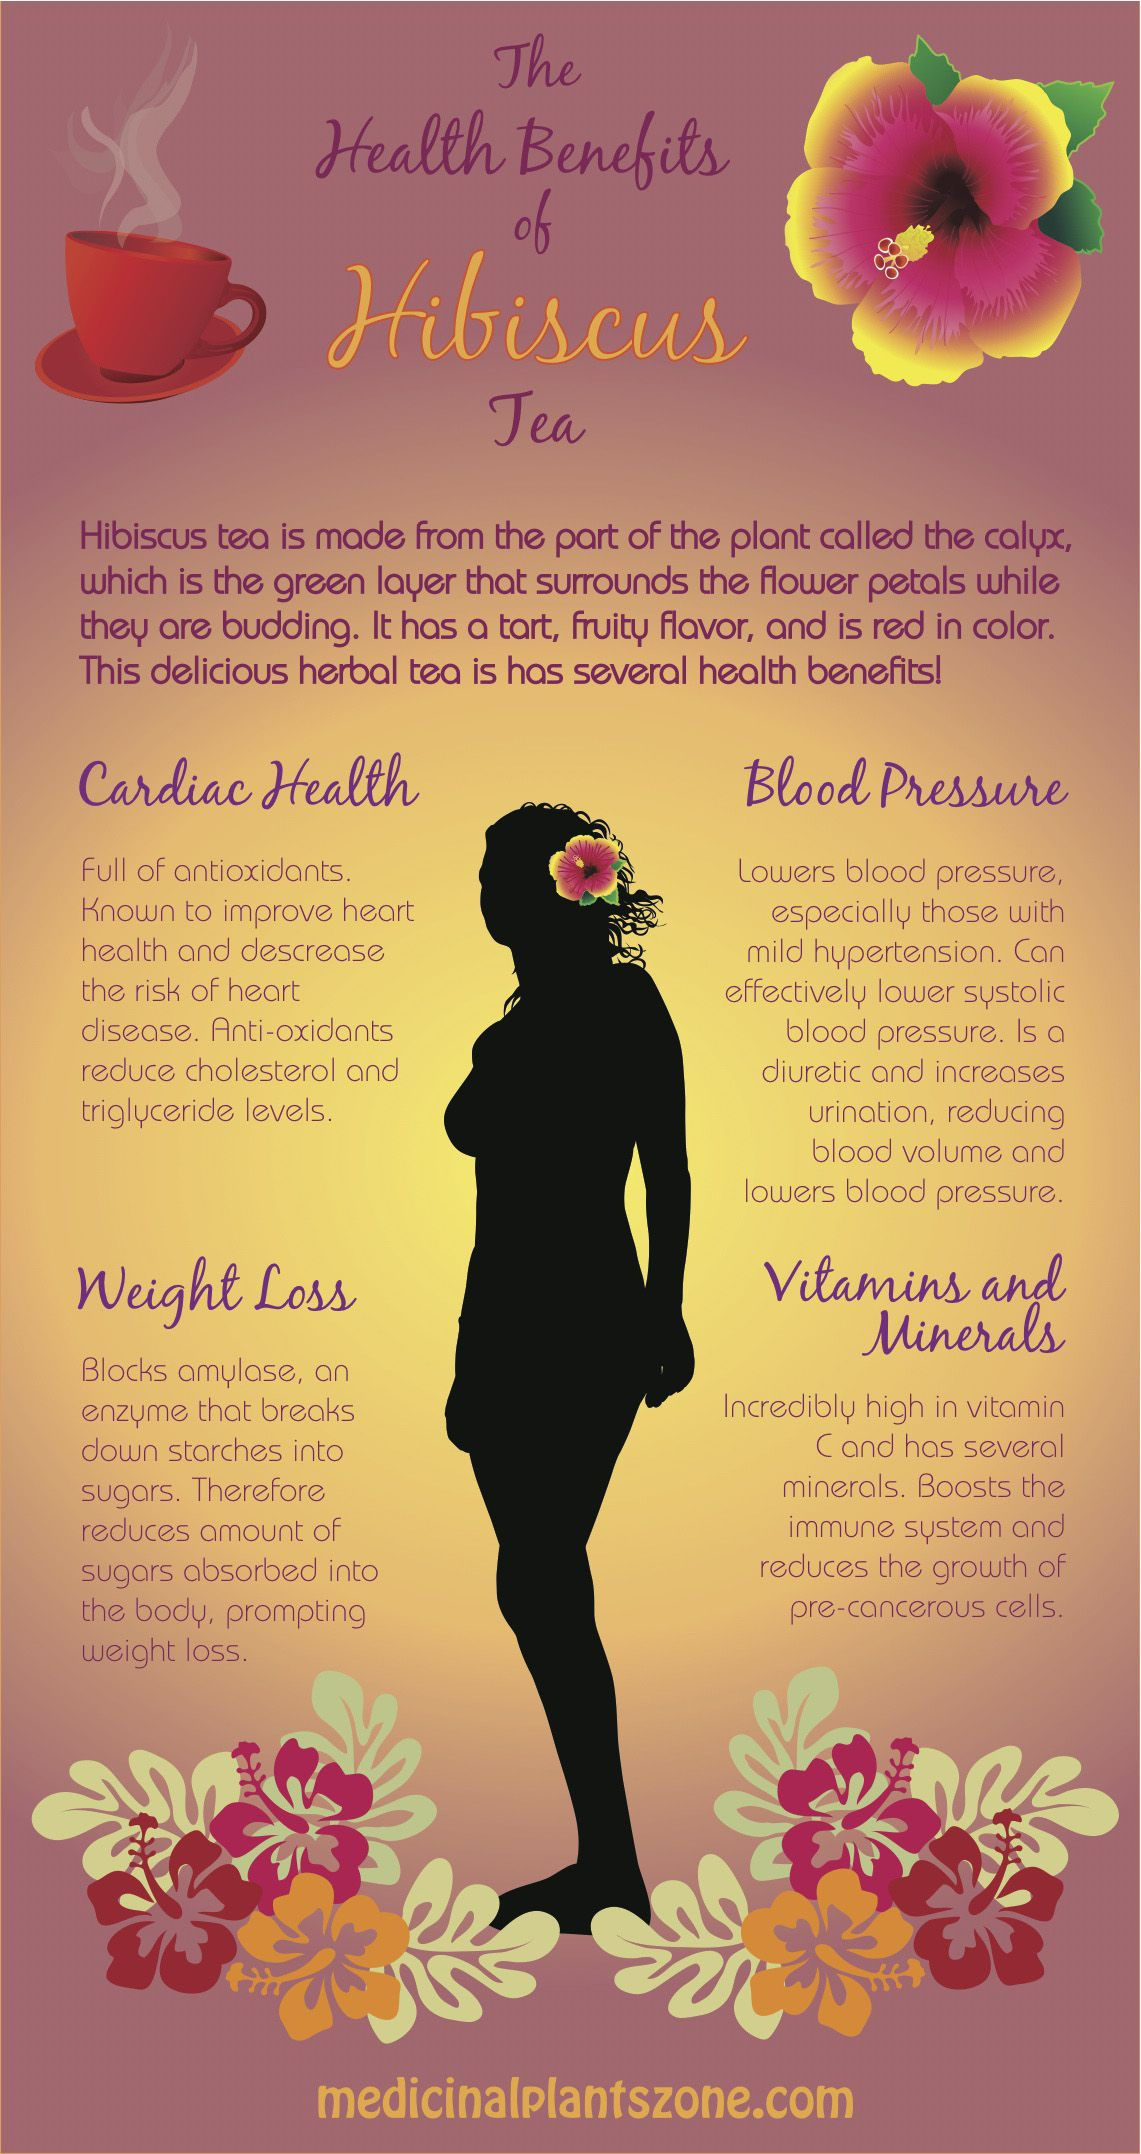 Hibiscus tea - benefit and harm, recipe. Hibiscus during pregnancy 82